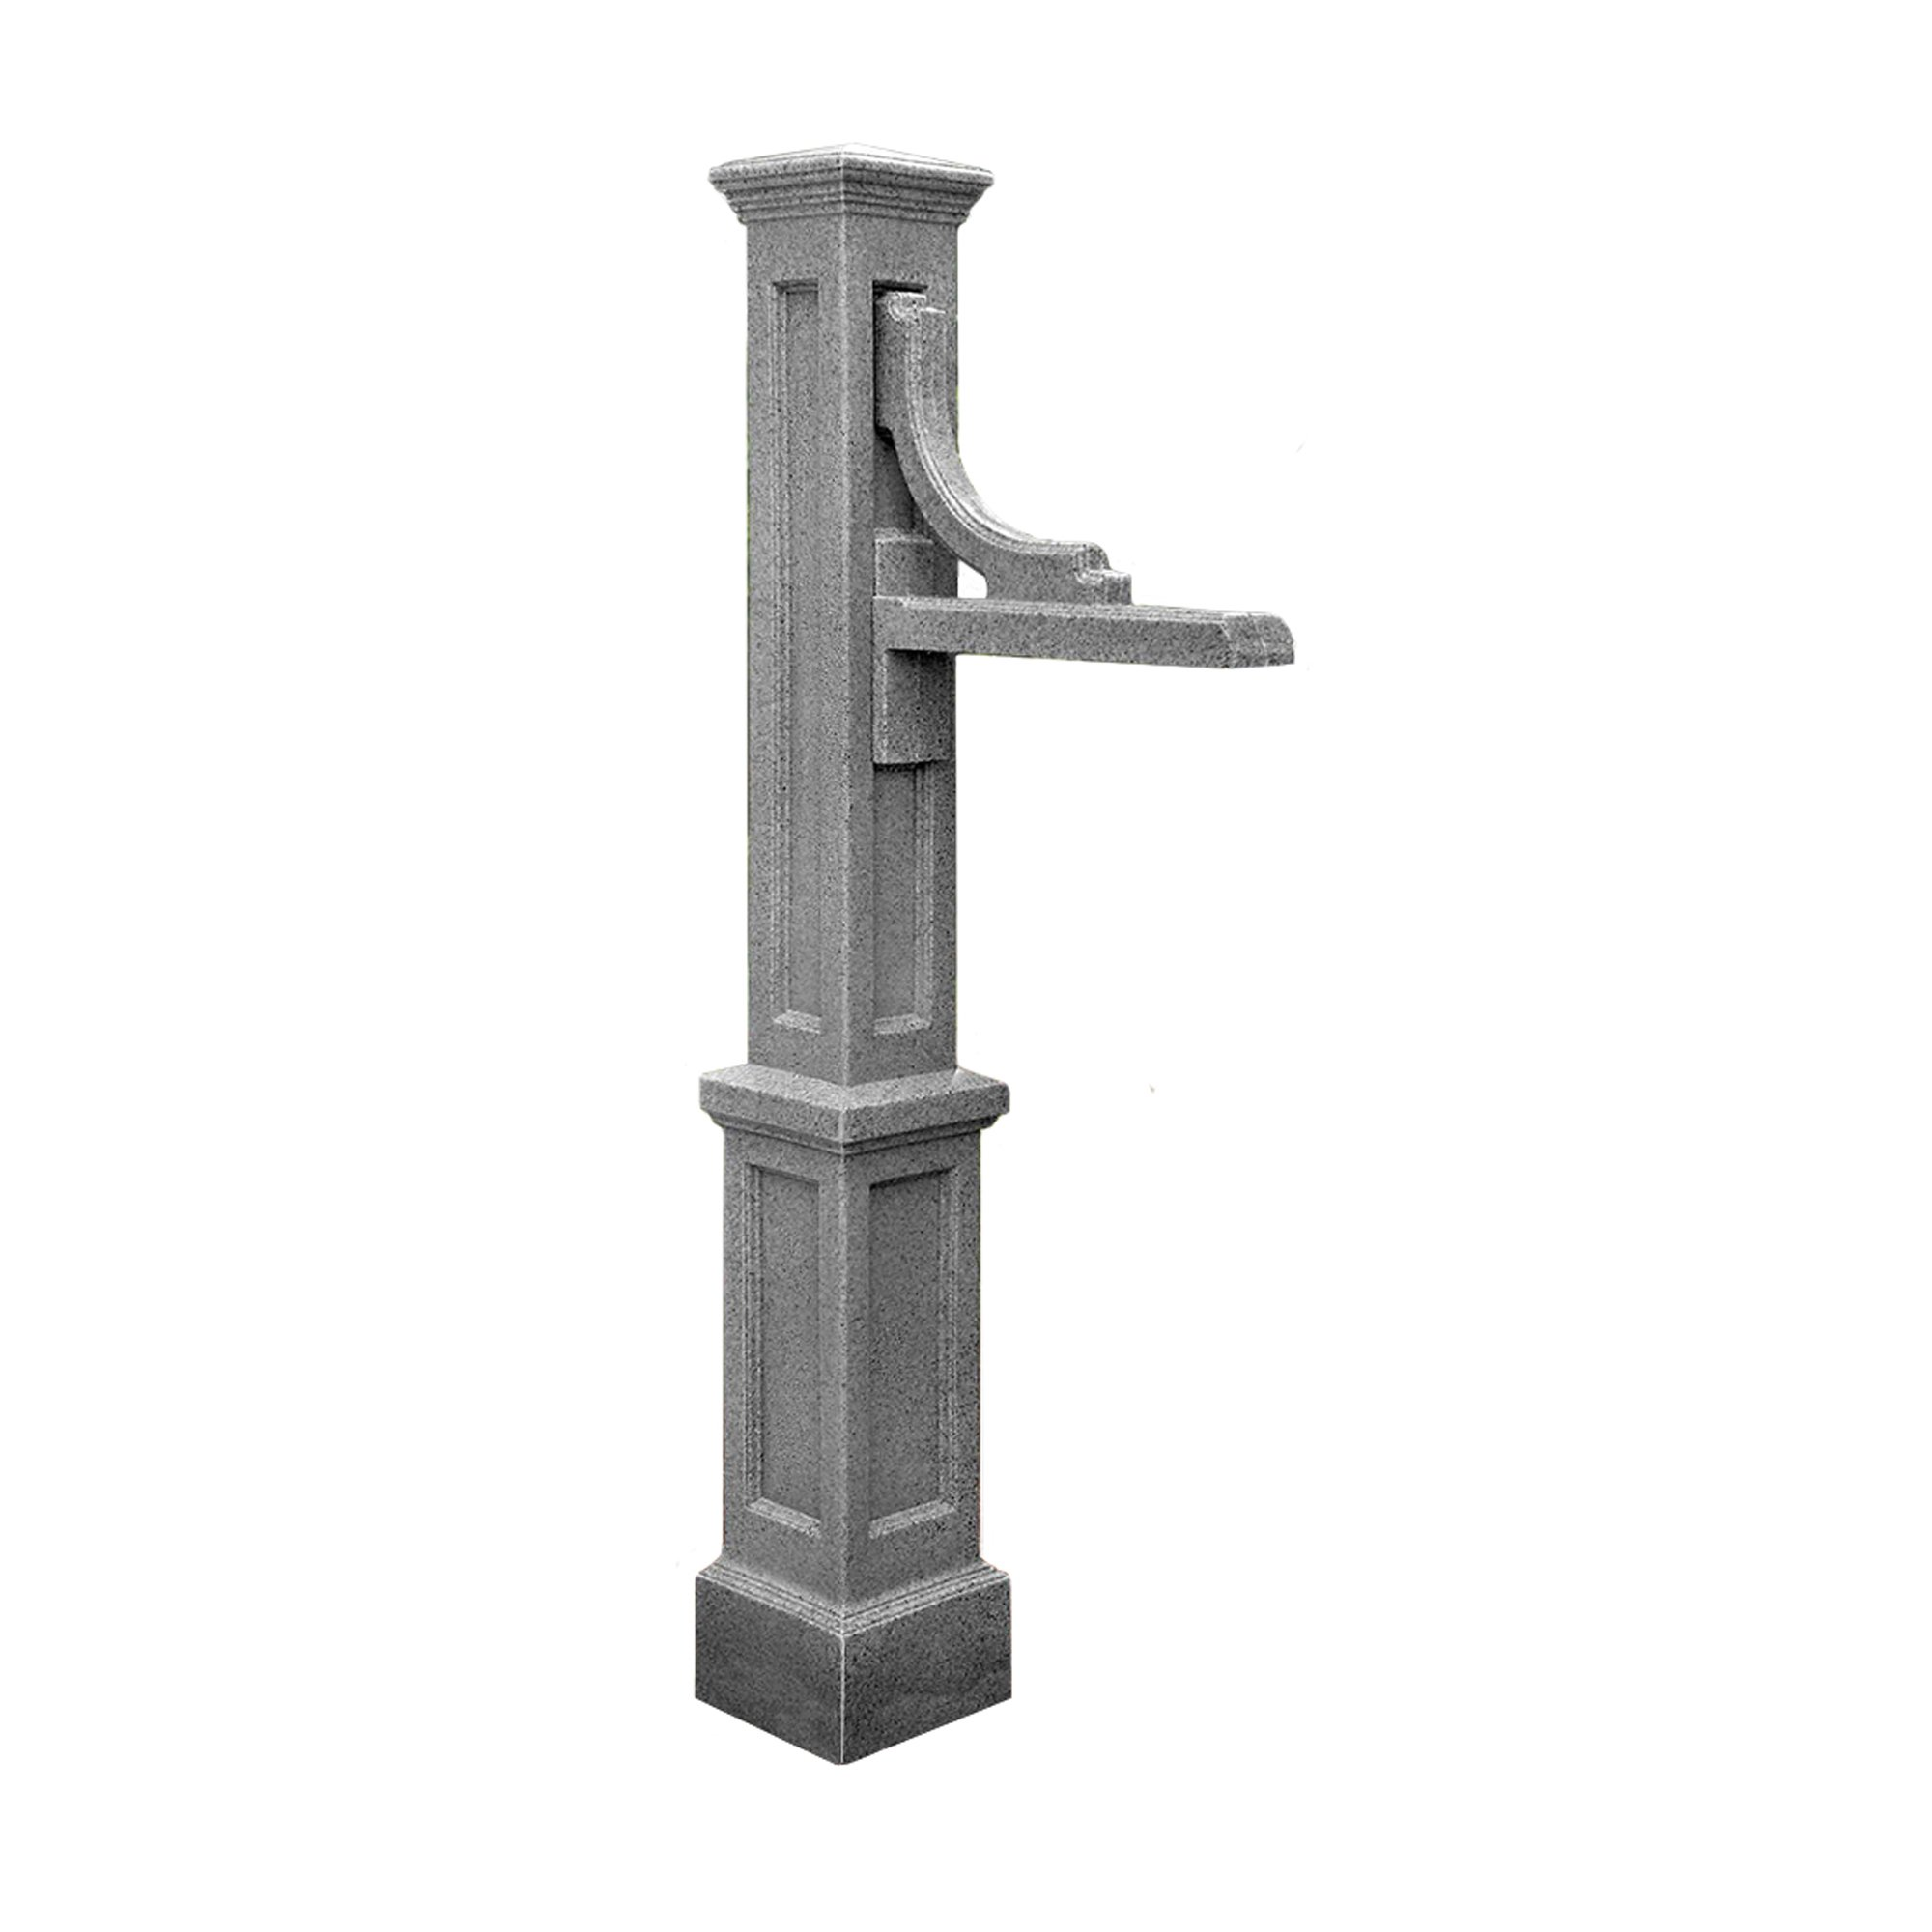 Mayne 5812-GG Woodhaven Address Sign Post, Granite